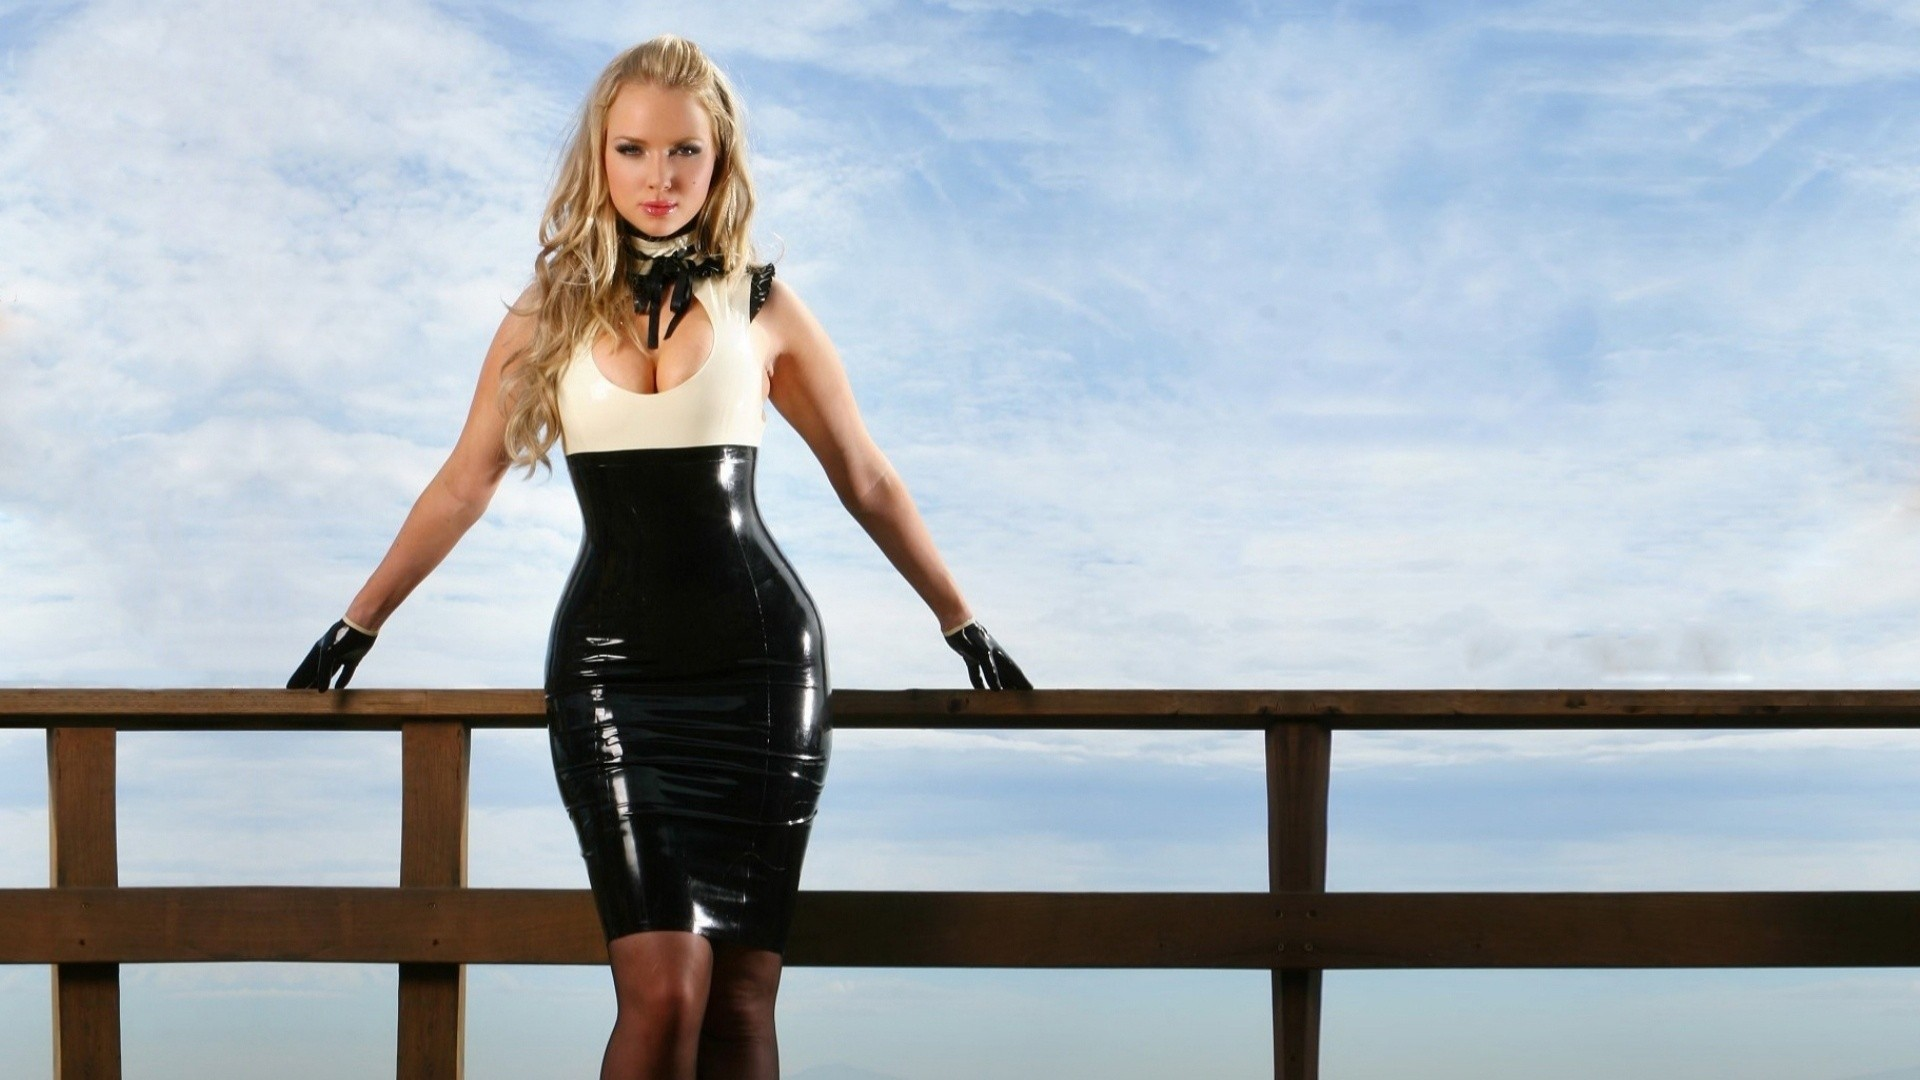 blondes woman gloves cleavage HD Wallpaper